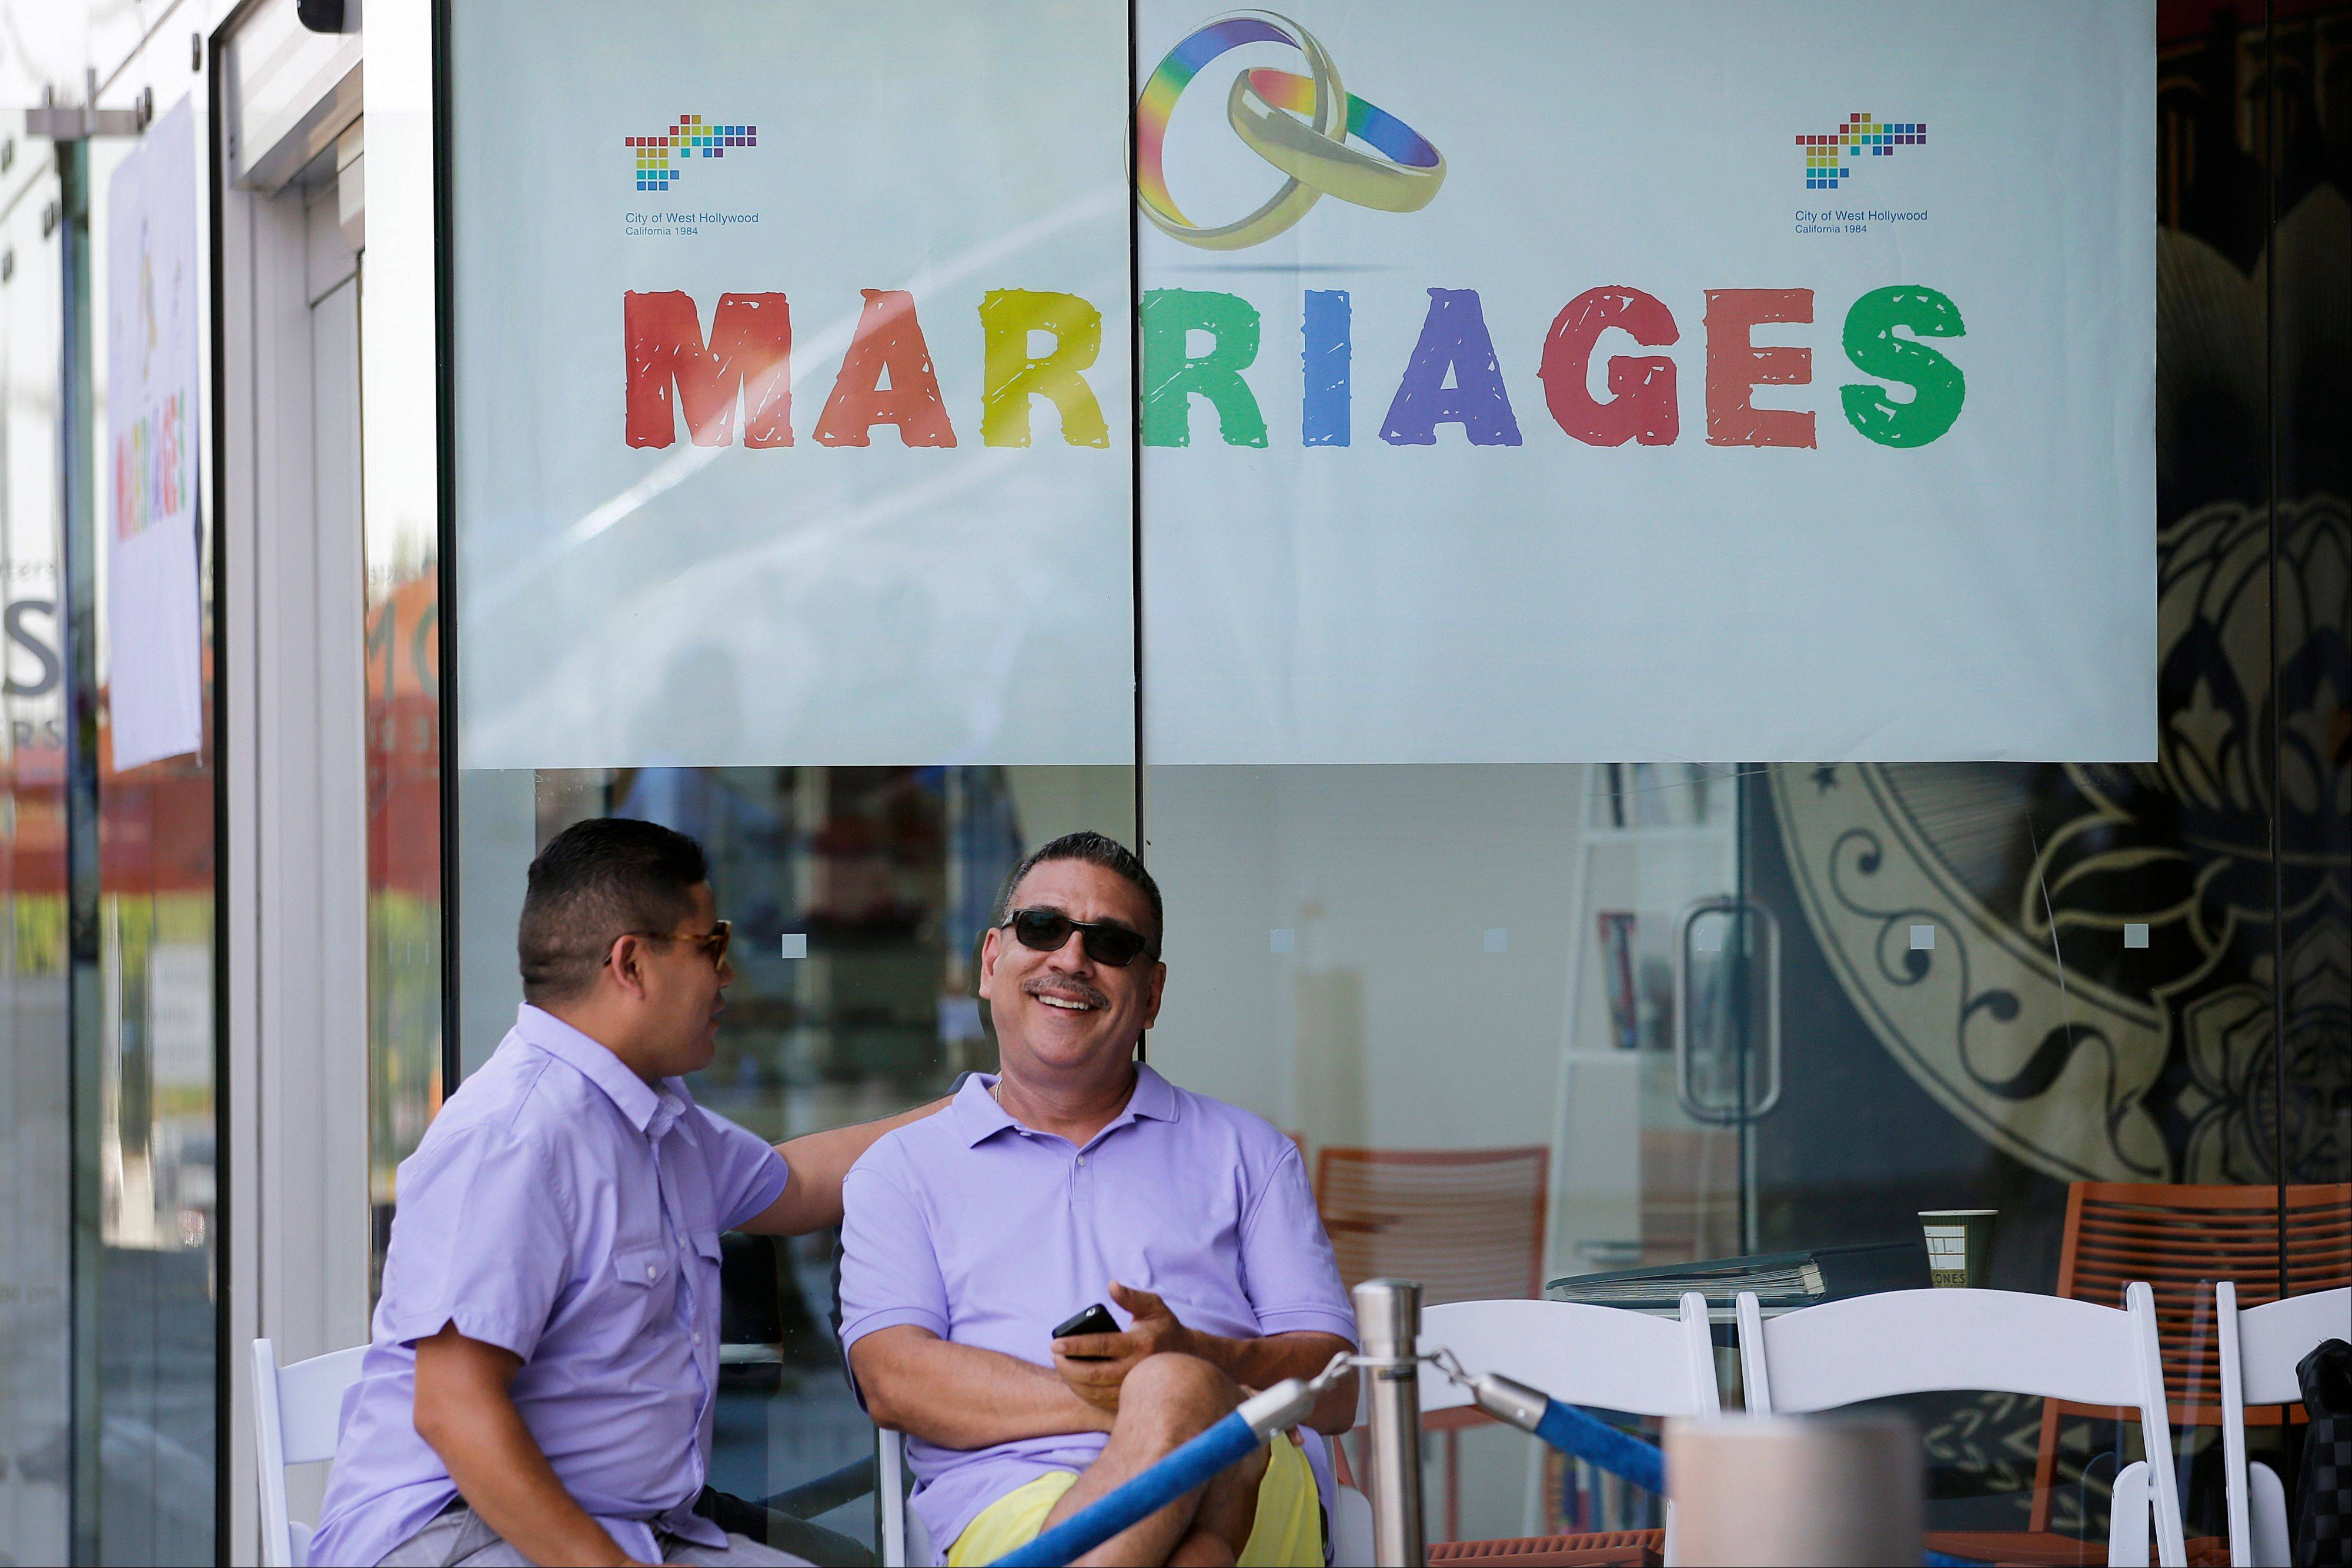 Jose Guerrero, left, and Patrick Rodriguez chat before their wedding ceremony in West Hollywood, Calif., Monday, July 1, 2013. The city of West Hollywood is offering civil marriage ceremonies for same-sex couples free Monday.